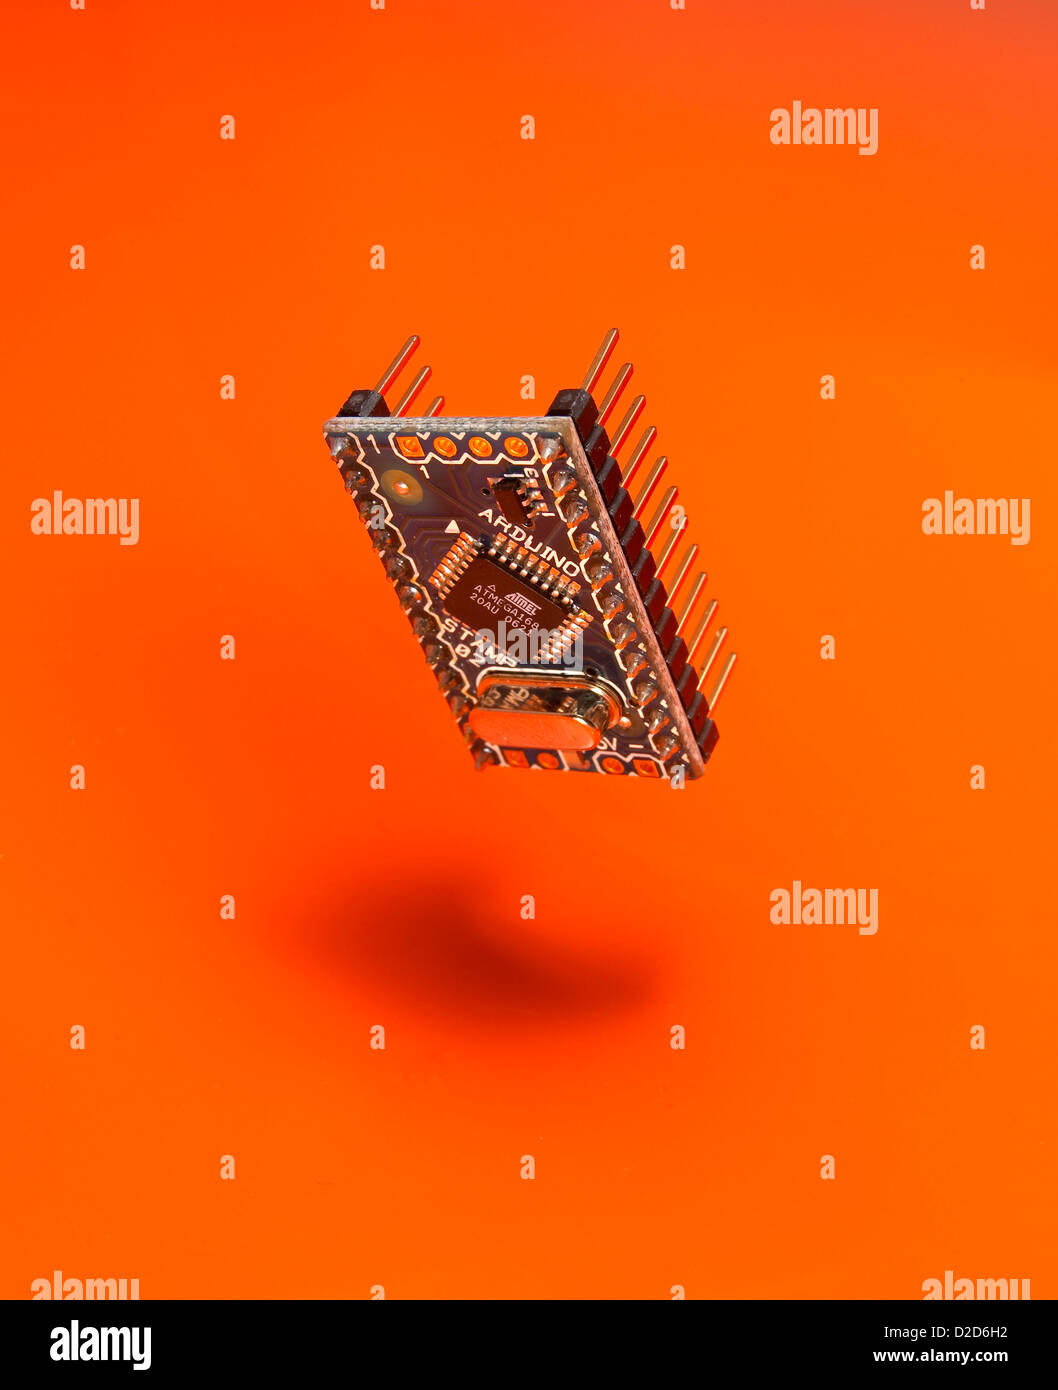 Micro chip suspended in air cut out orange background - Stock Image